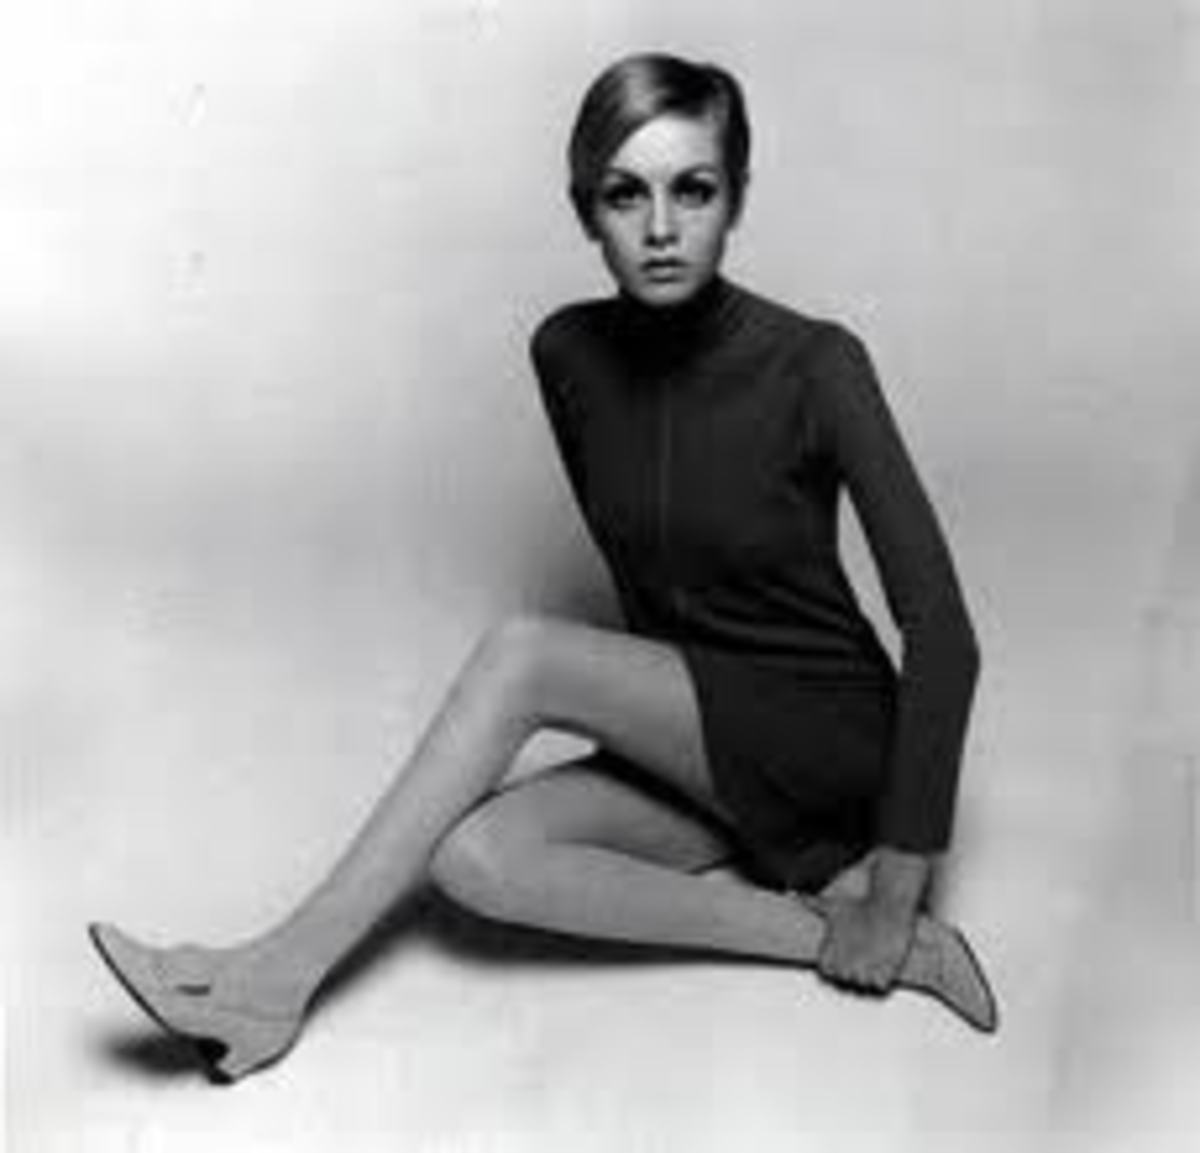 Twiggy...the quintessential Mod chic